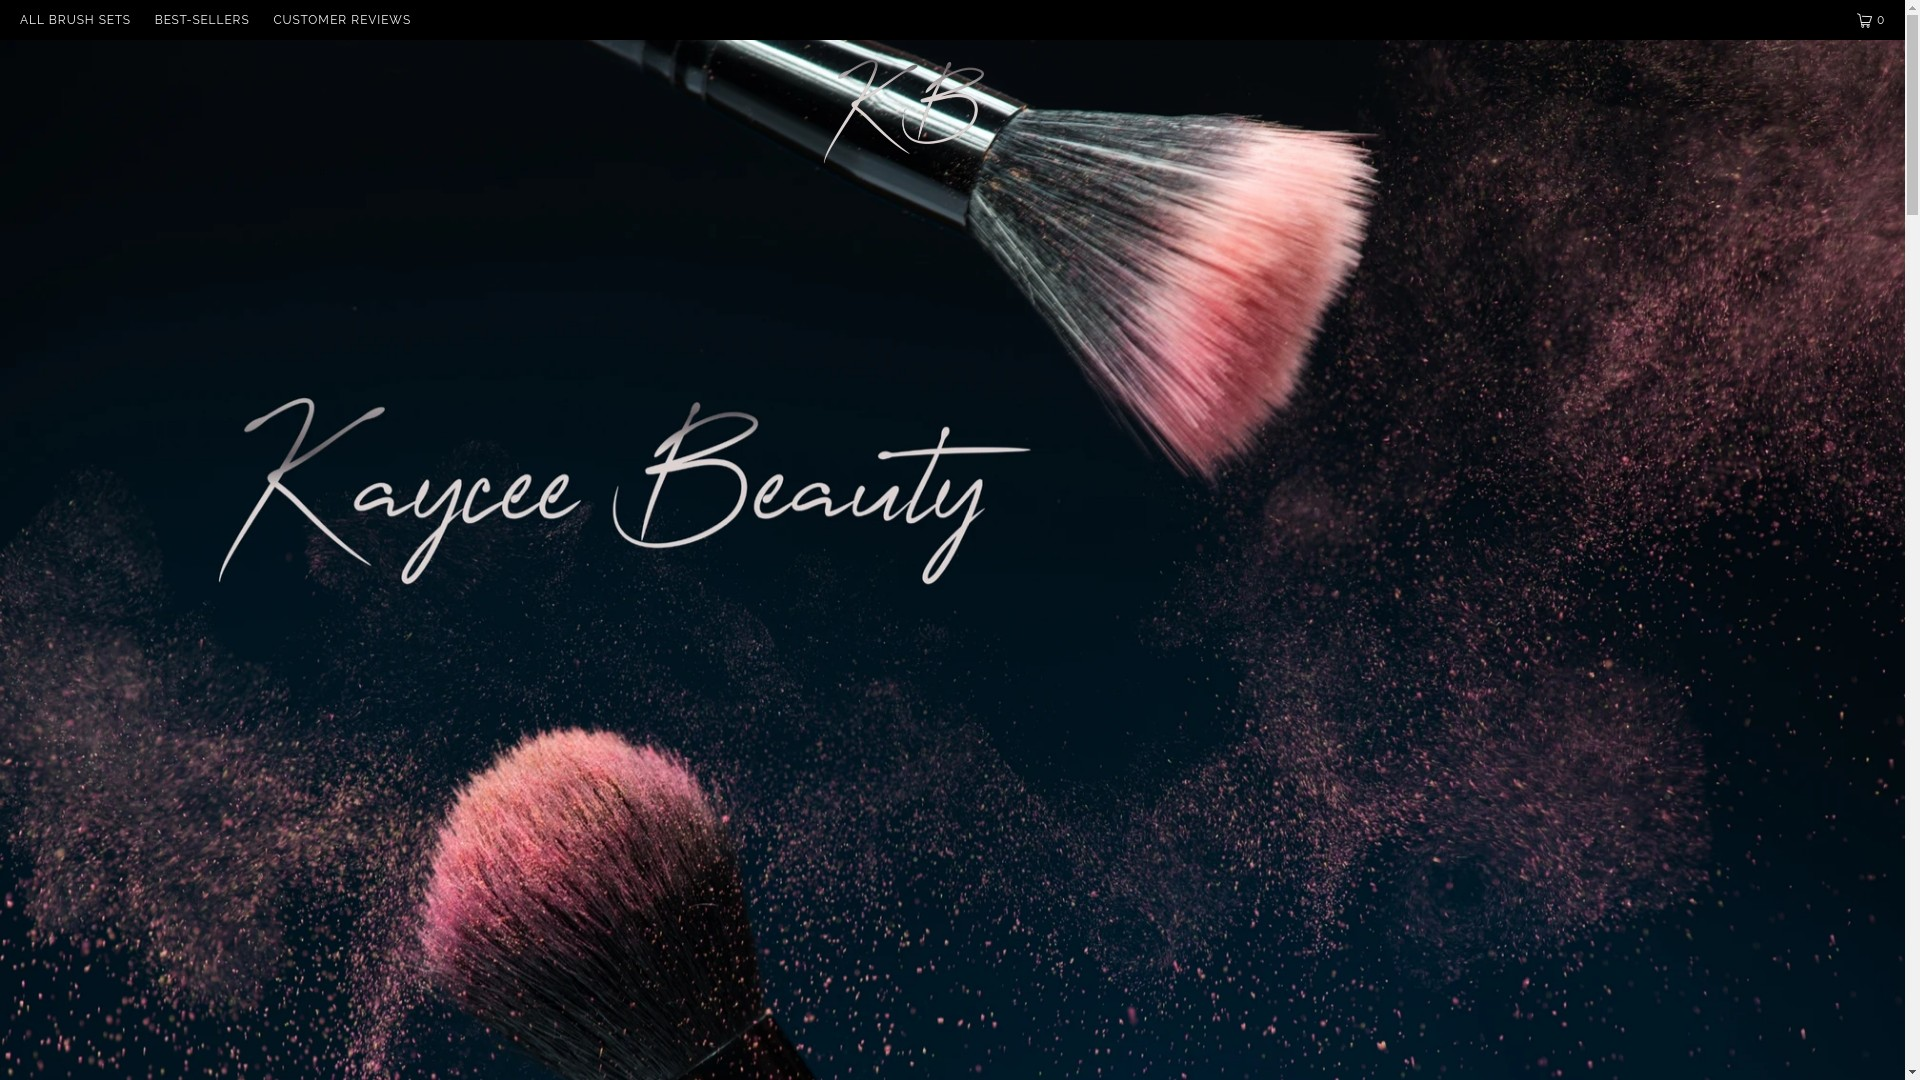 Is Kaycee Beauty Brushes a Scam? Review of the Online Store